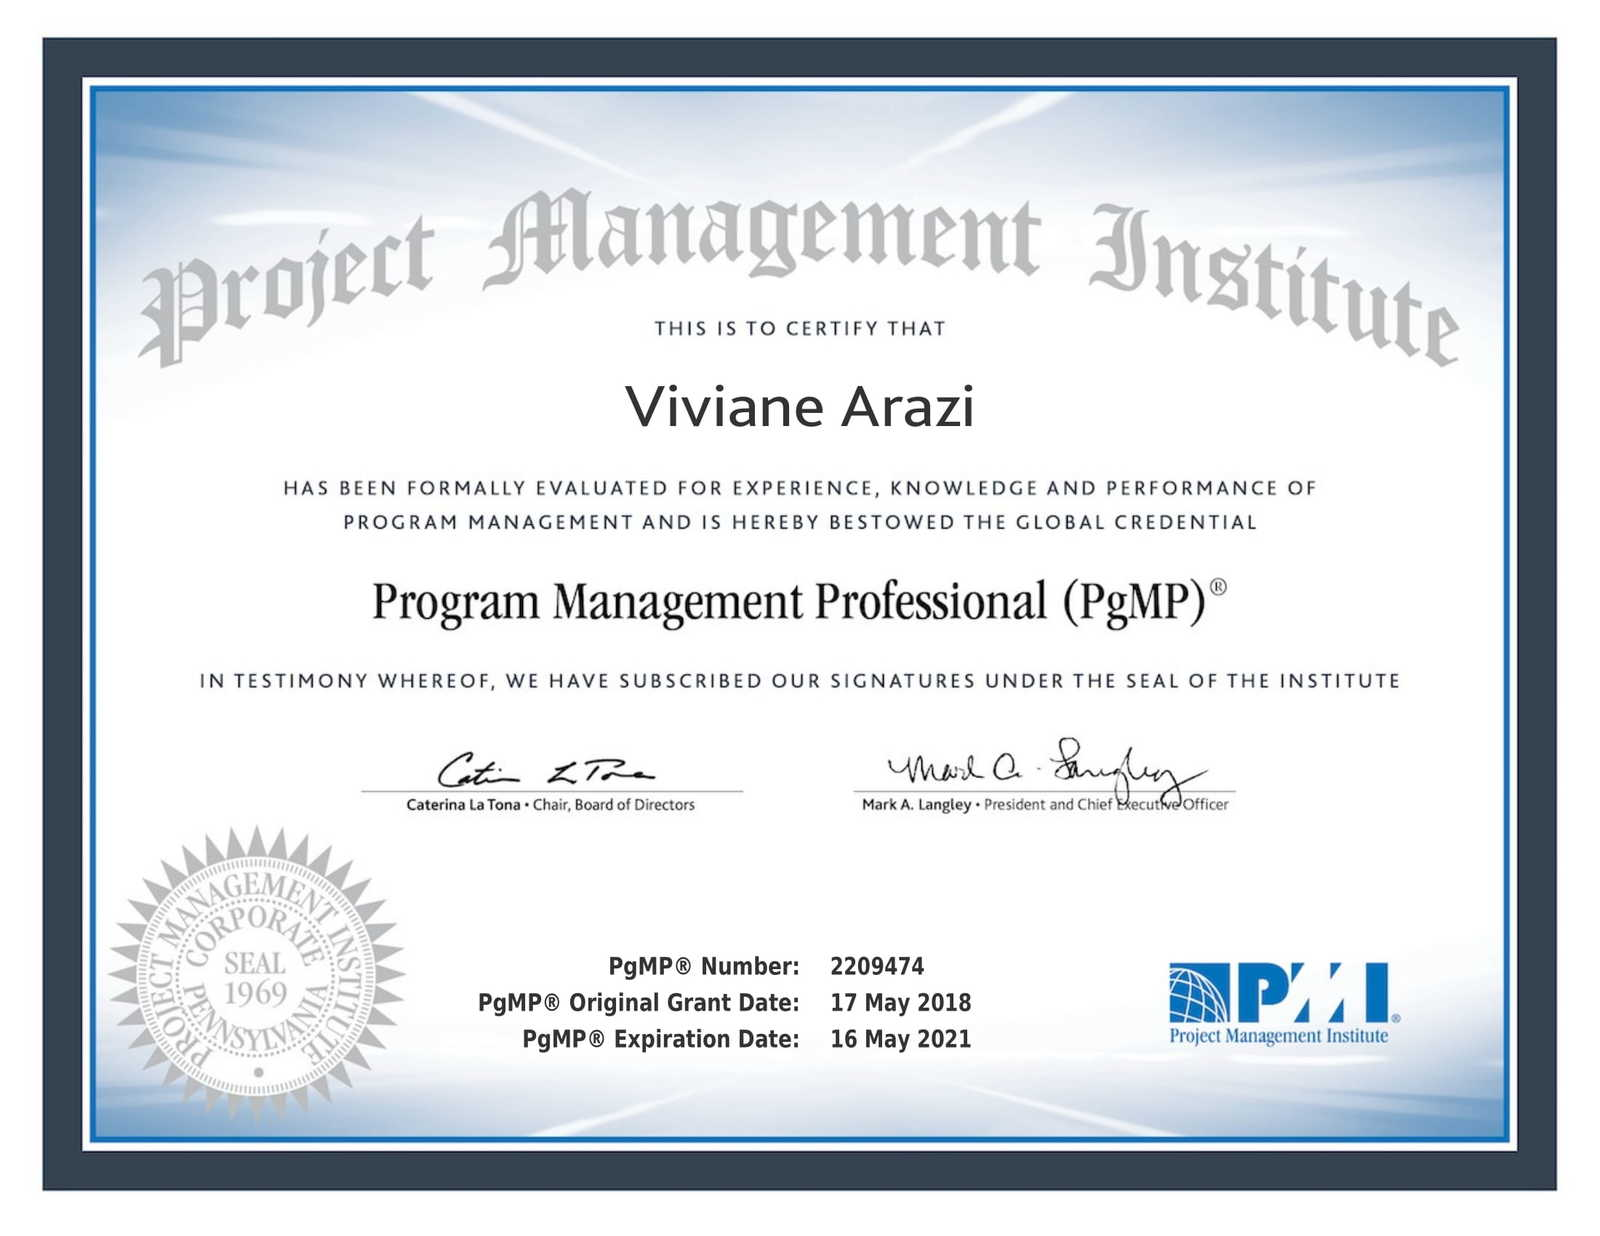 Program And Project Management Mentoring With Viviane Arazi